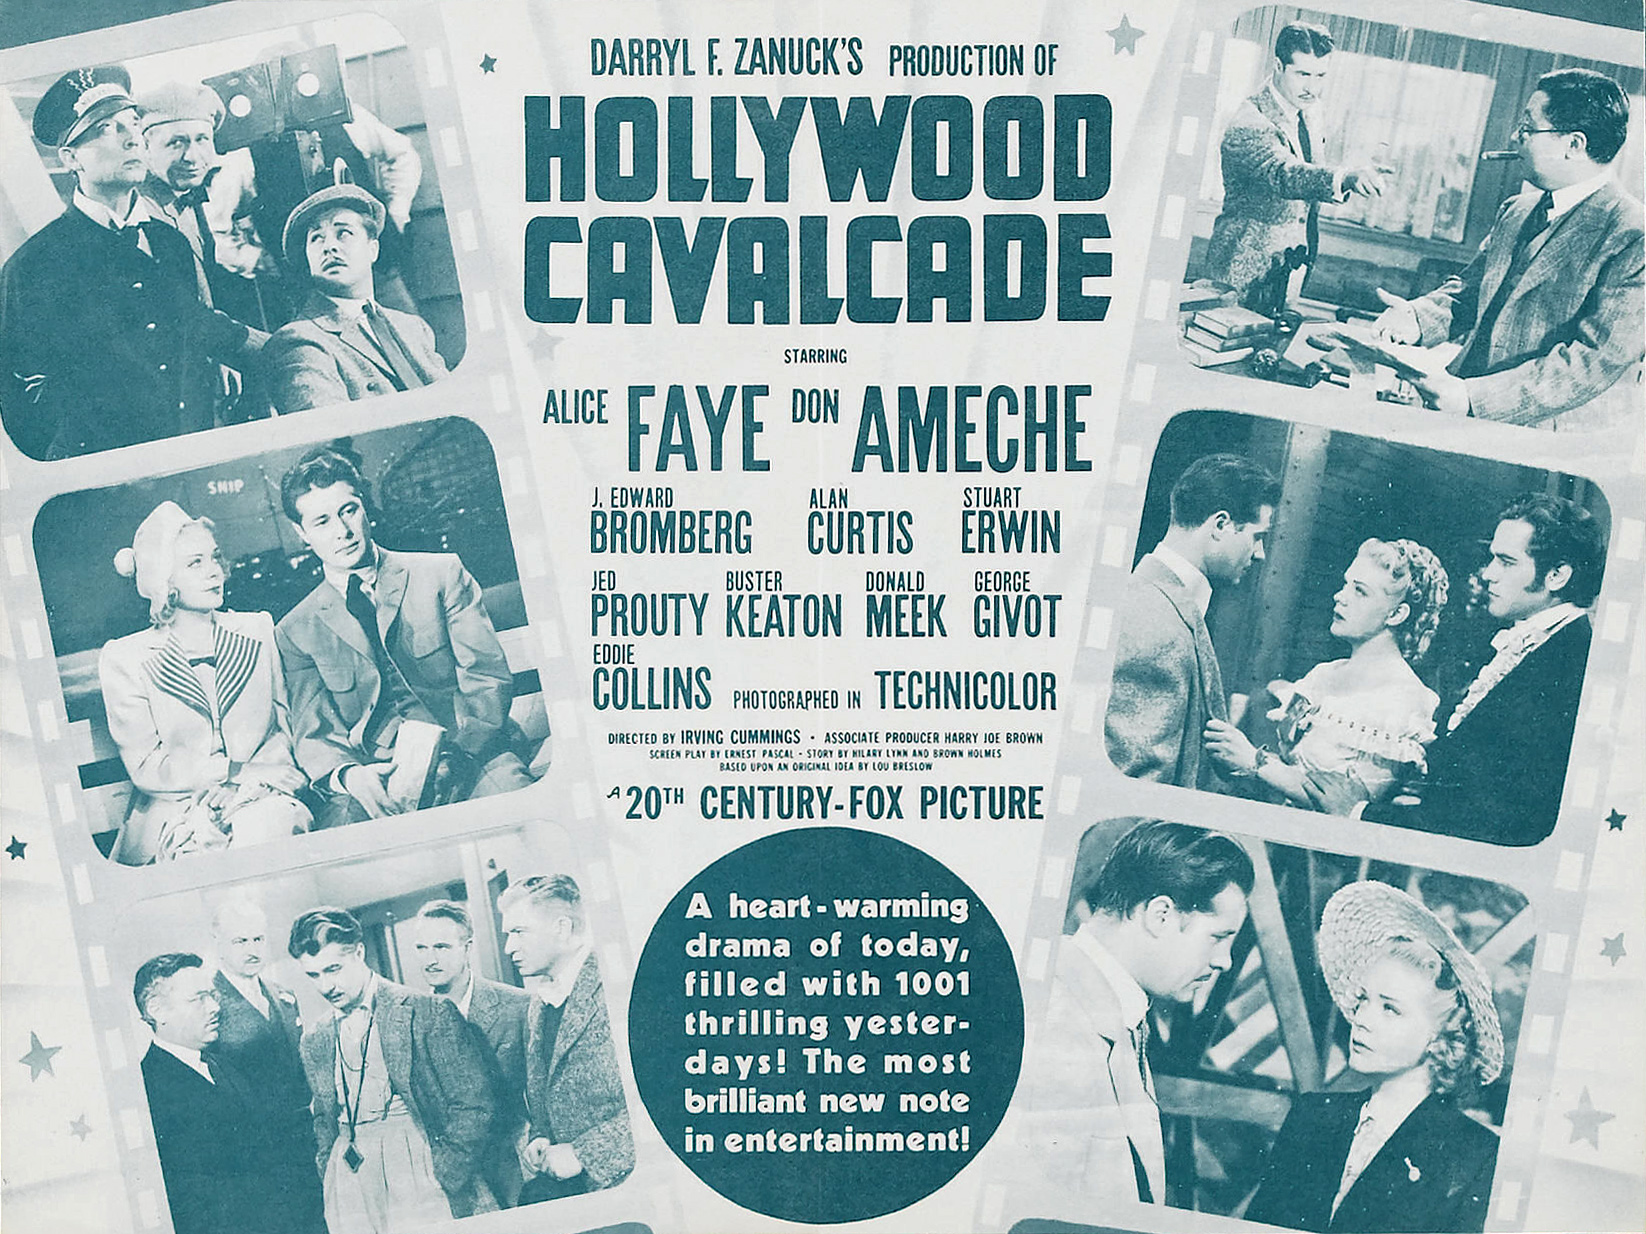 Buster Keaton, Don Ameche, J. Edward Bromberg, Eddie Collins, Alan Curtis, Stuart Erwin, Alice Faye, and Russell Hicks in Hollywood Cavalcade (1939)